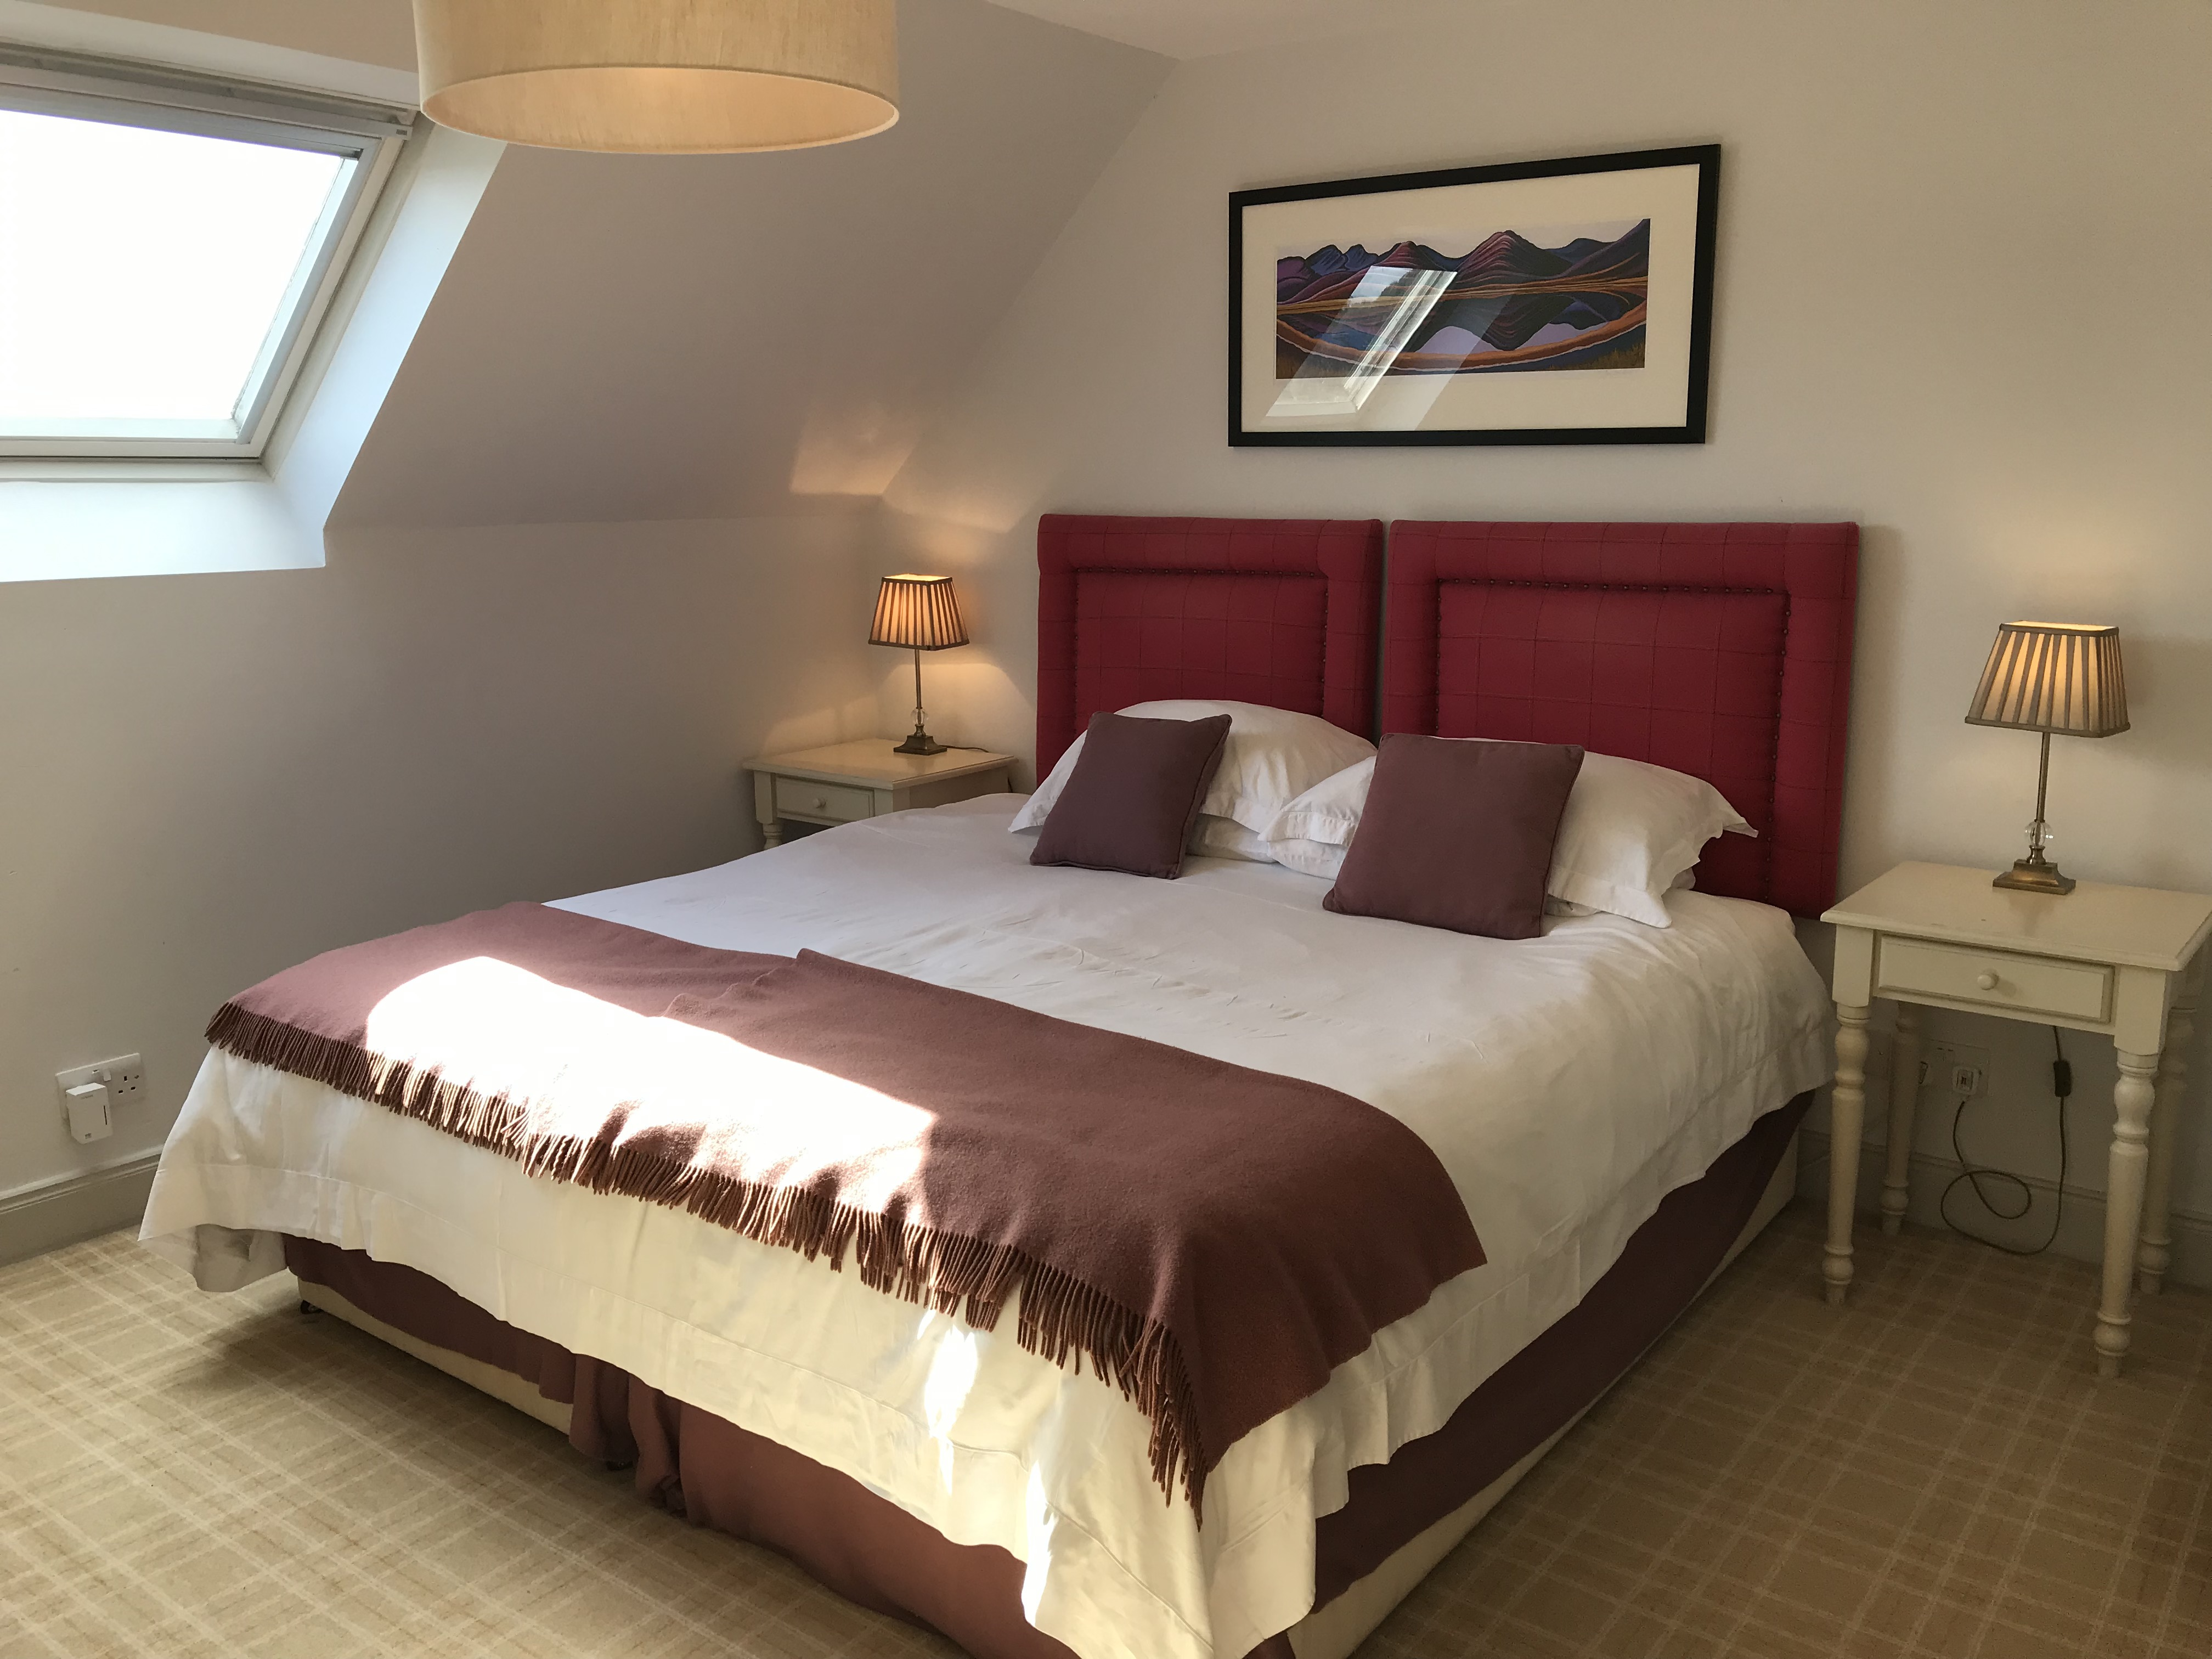 SUPERIOR ROOM WITH A SUPER KING-SIZE BED OR MADE AS A TWIN, WITH AN EN SUITE BATHROOM WITH A SHOWER